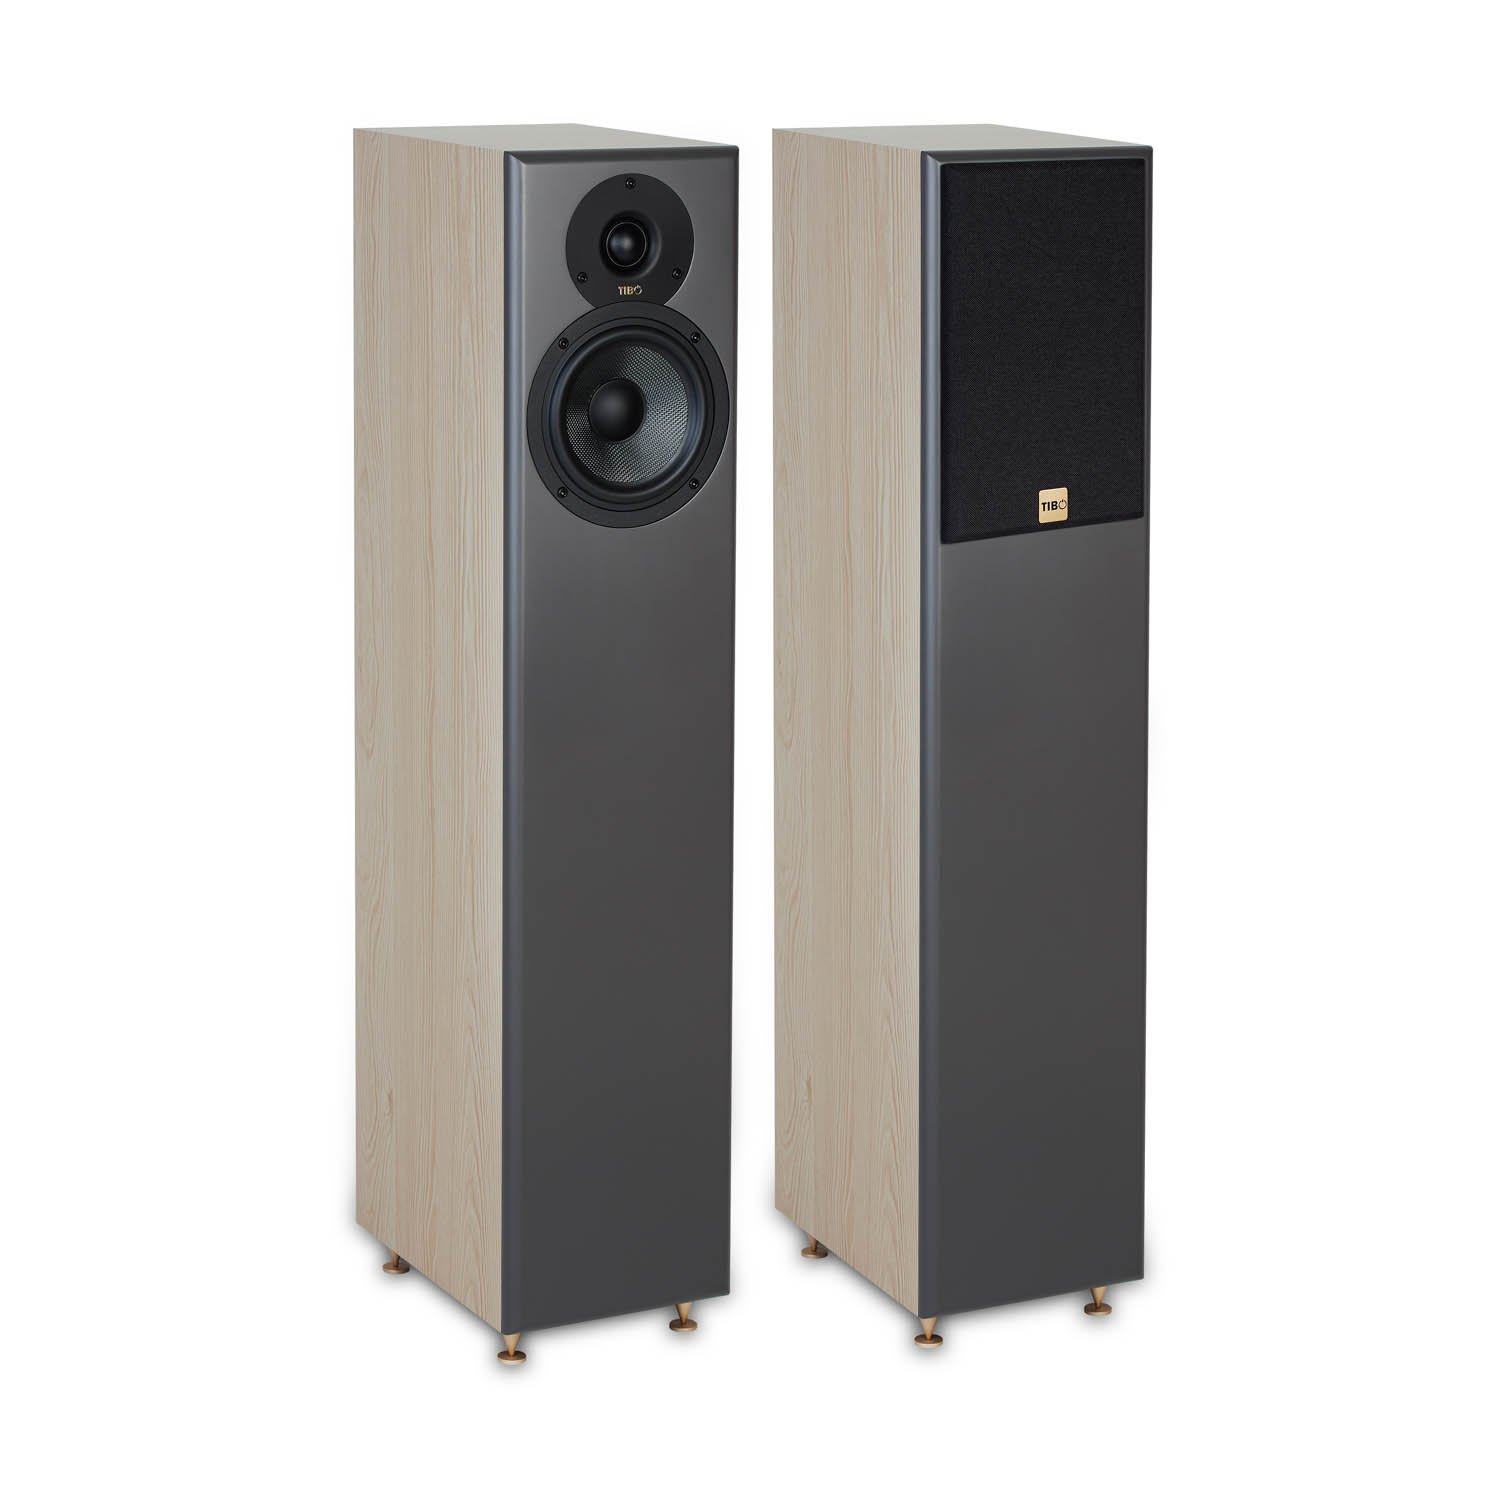 'Tibo Legacy 5 + Altavoz para Amplificador Light Oak